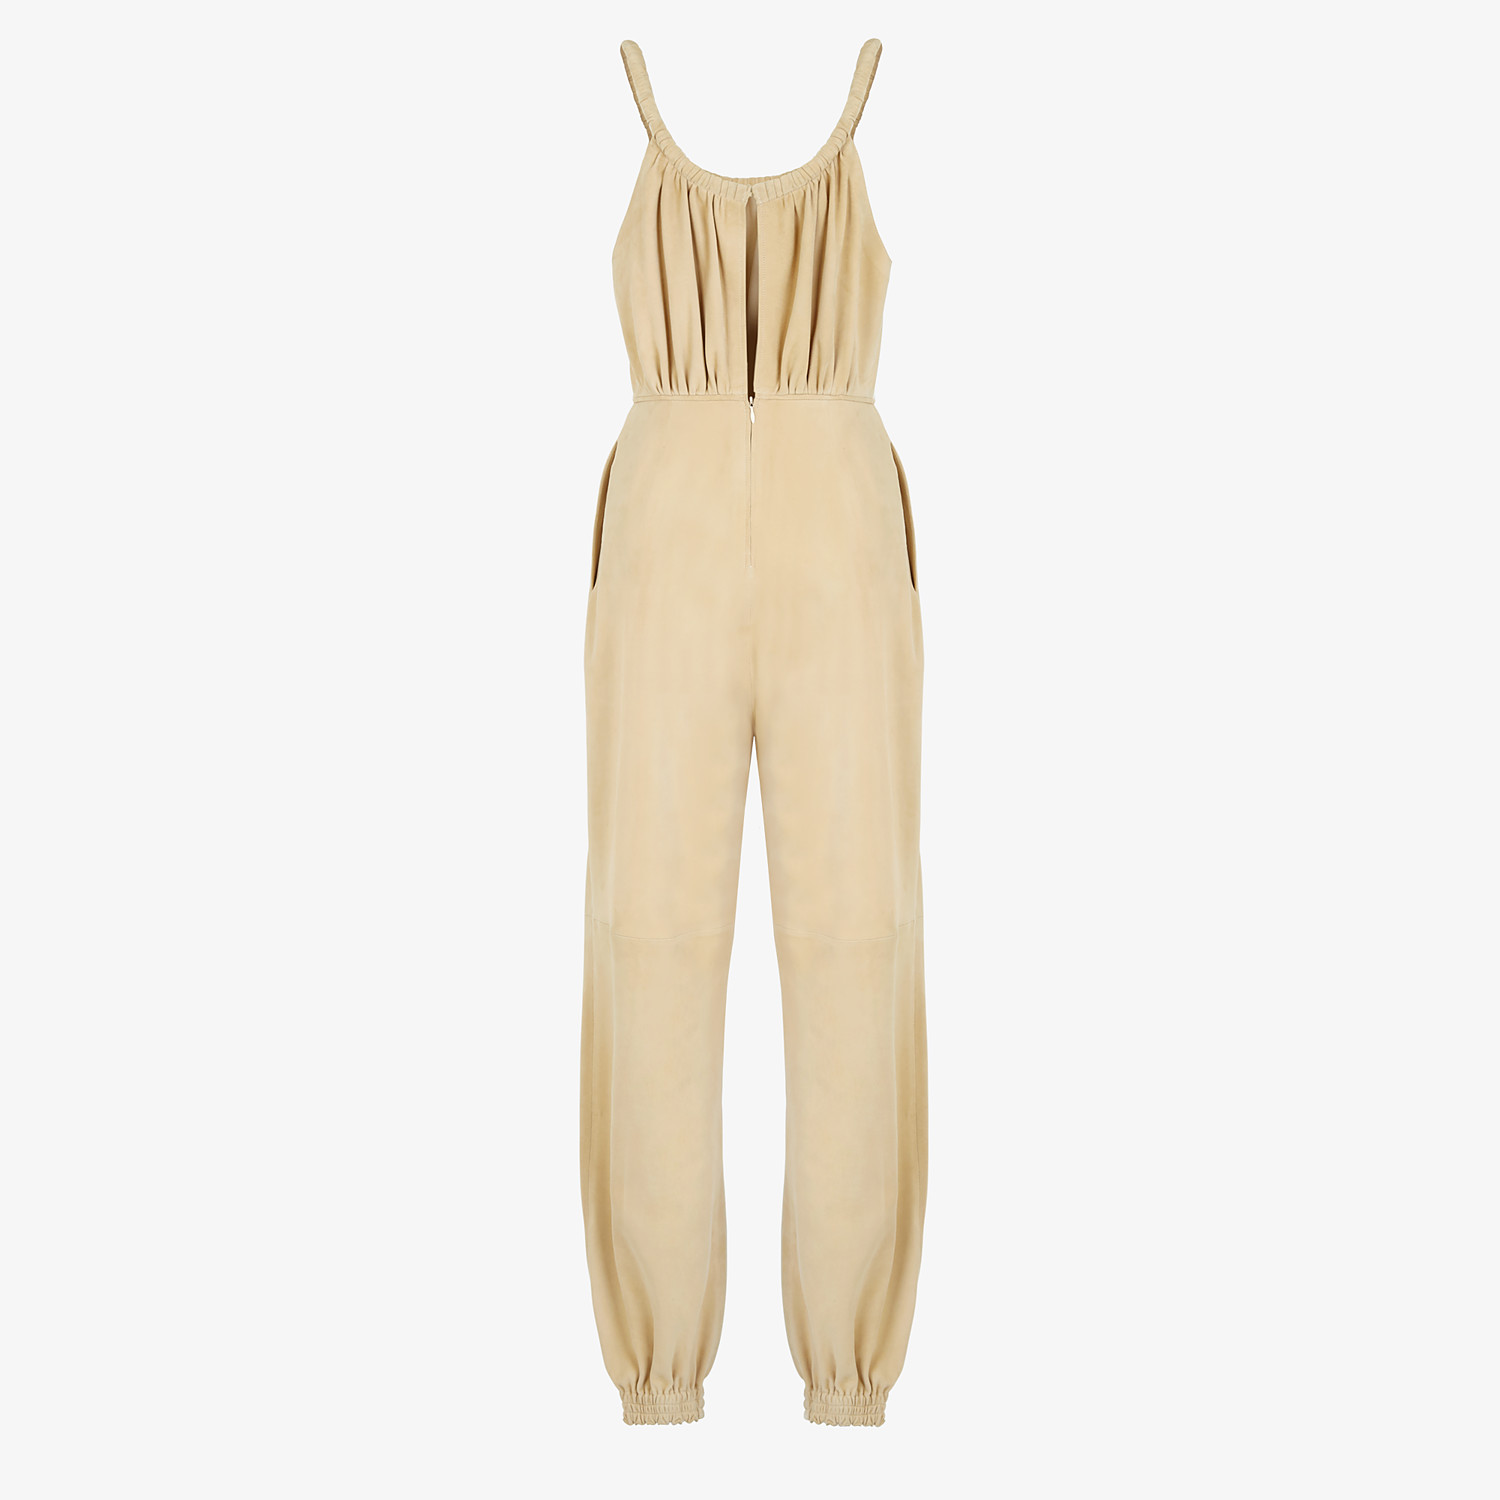 FENDI JUMPSUIT - Beige suede jumpsuit - view 2 detail